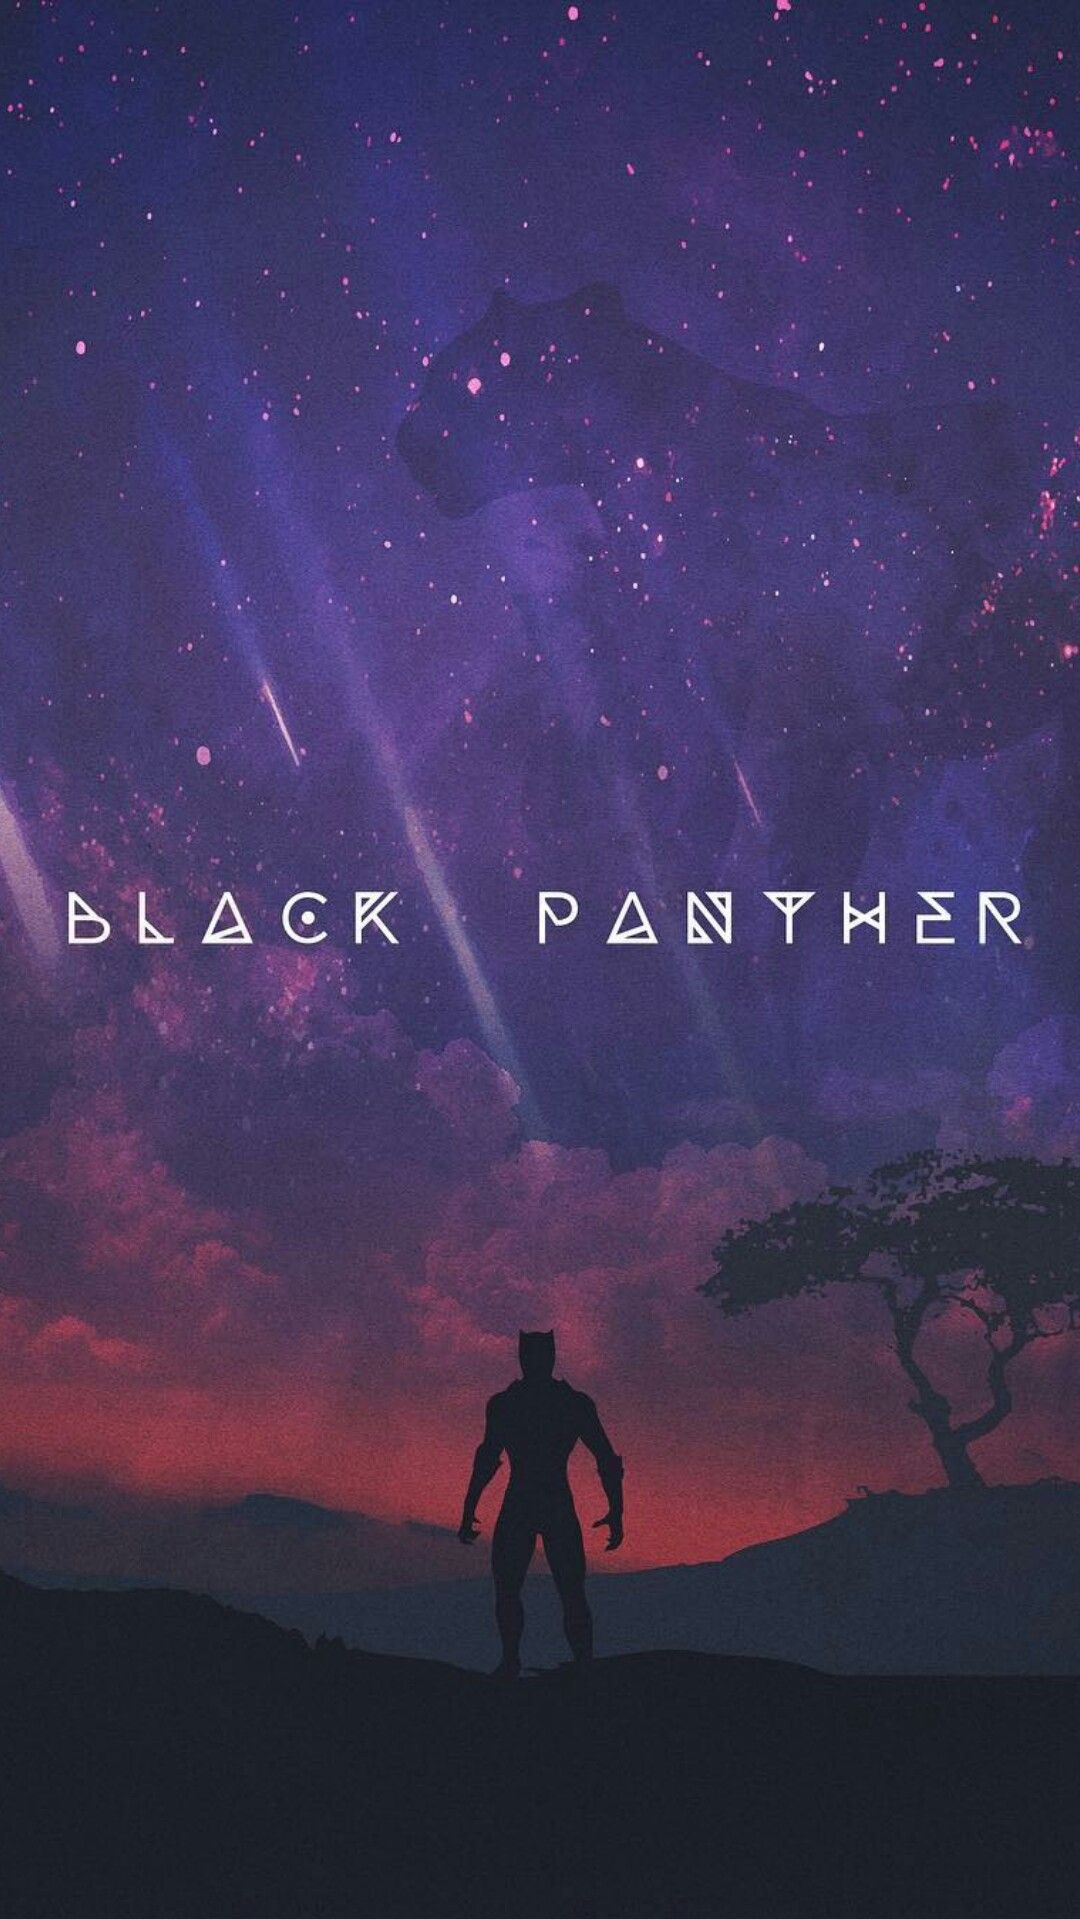 Black Panther Wakanda iPhone Wallpaper iphoneswallpapers com